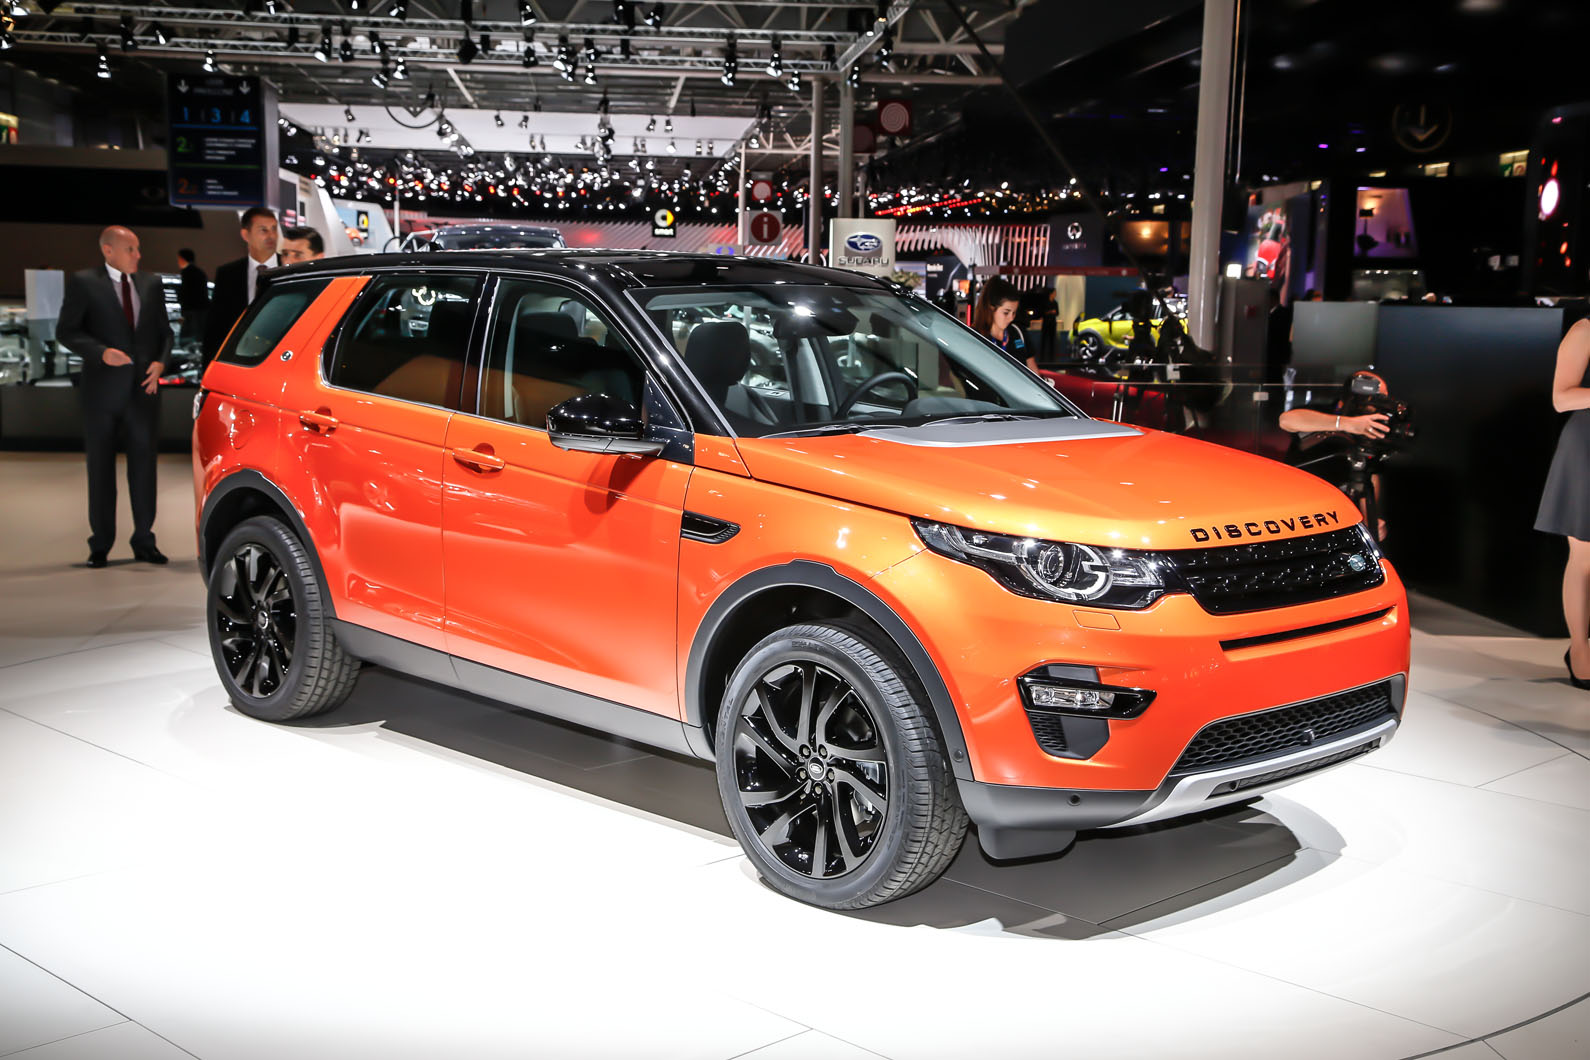 geneva at price front quarter range show velar rover india the landrover on land to motor and cost announced launch three of report september be